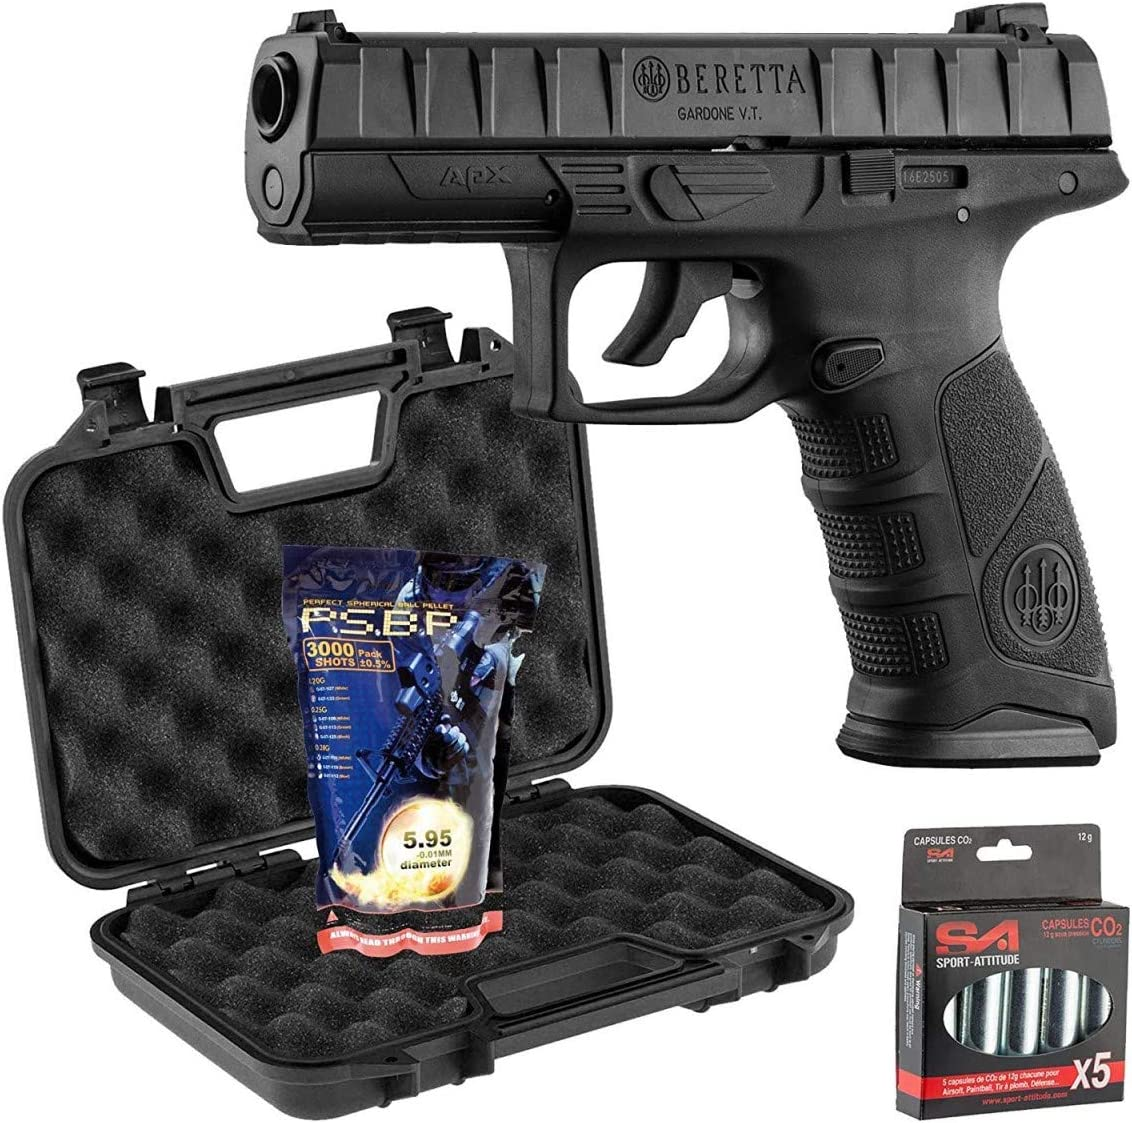 France Défense Pack Beretta APX 0,5J - Co2 + Mallette Noire + 5 Capsules De Co2 + 3000 Billes 0,25G G&G